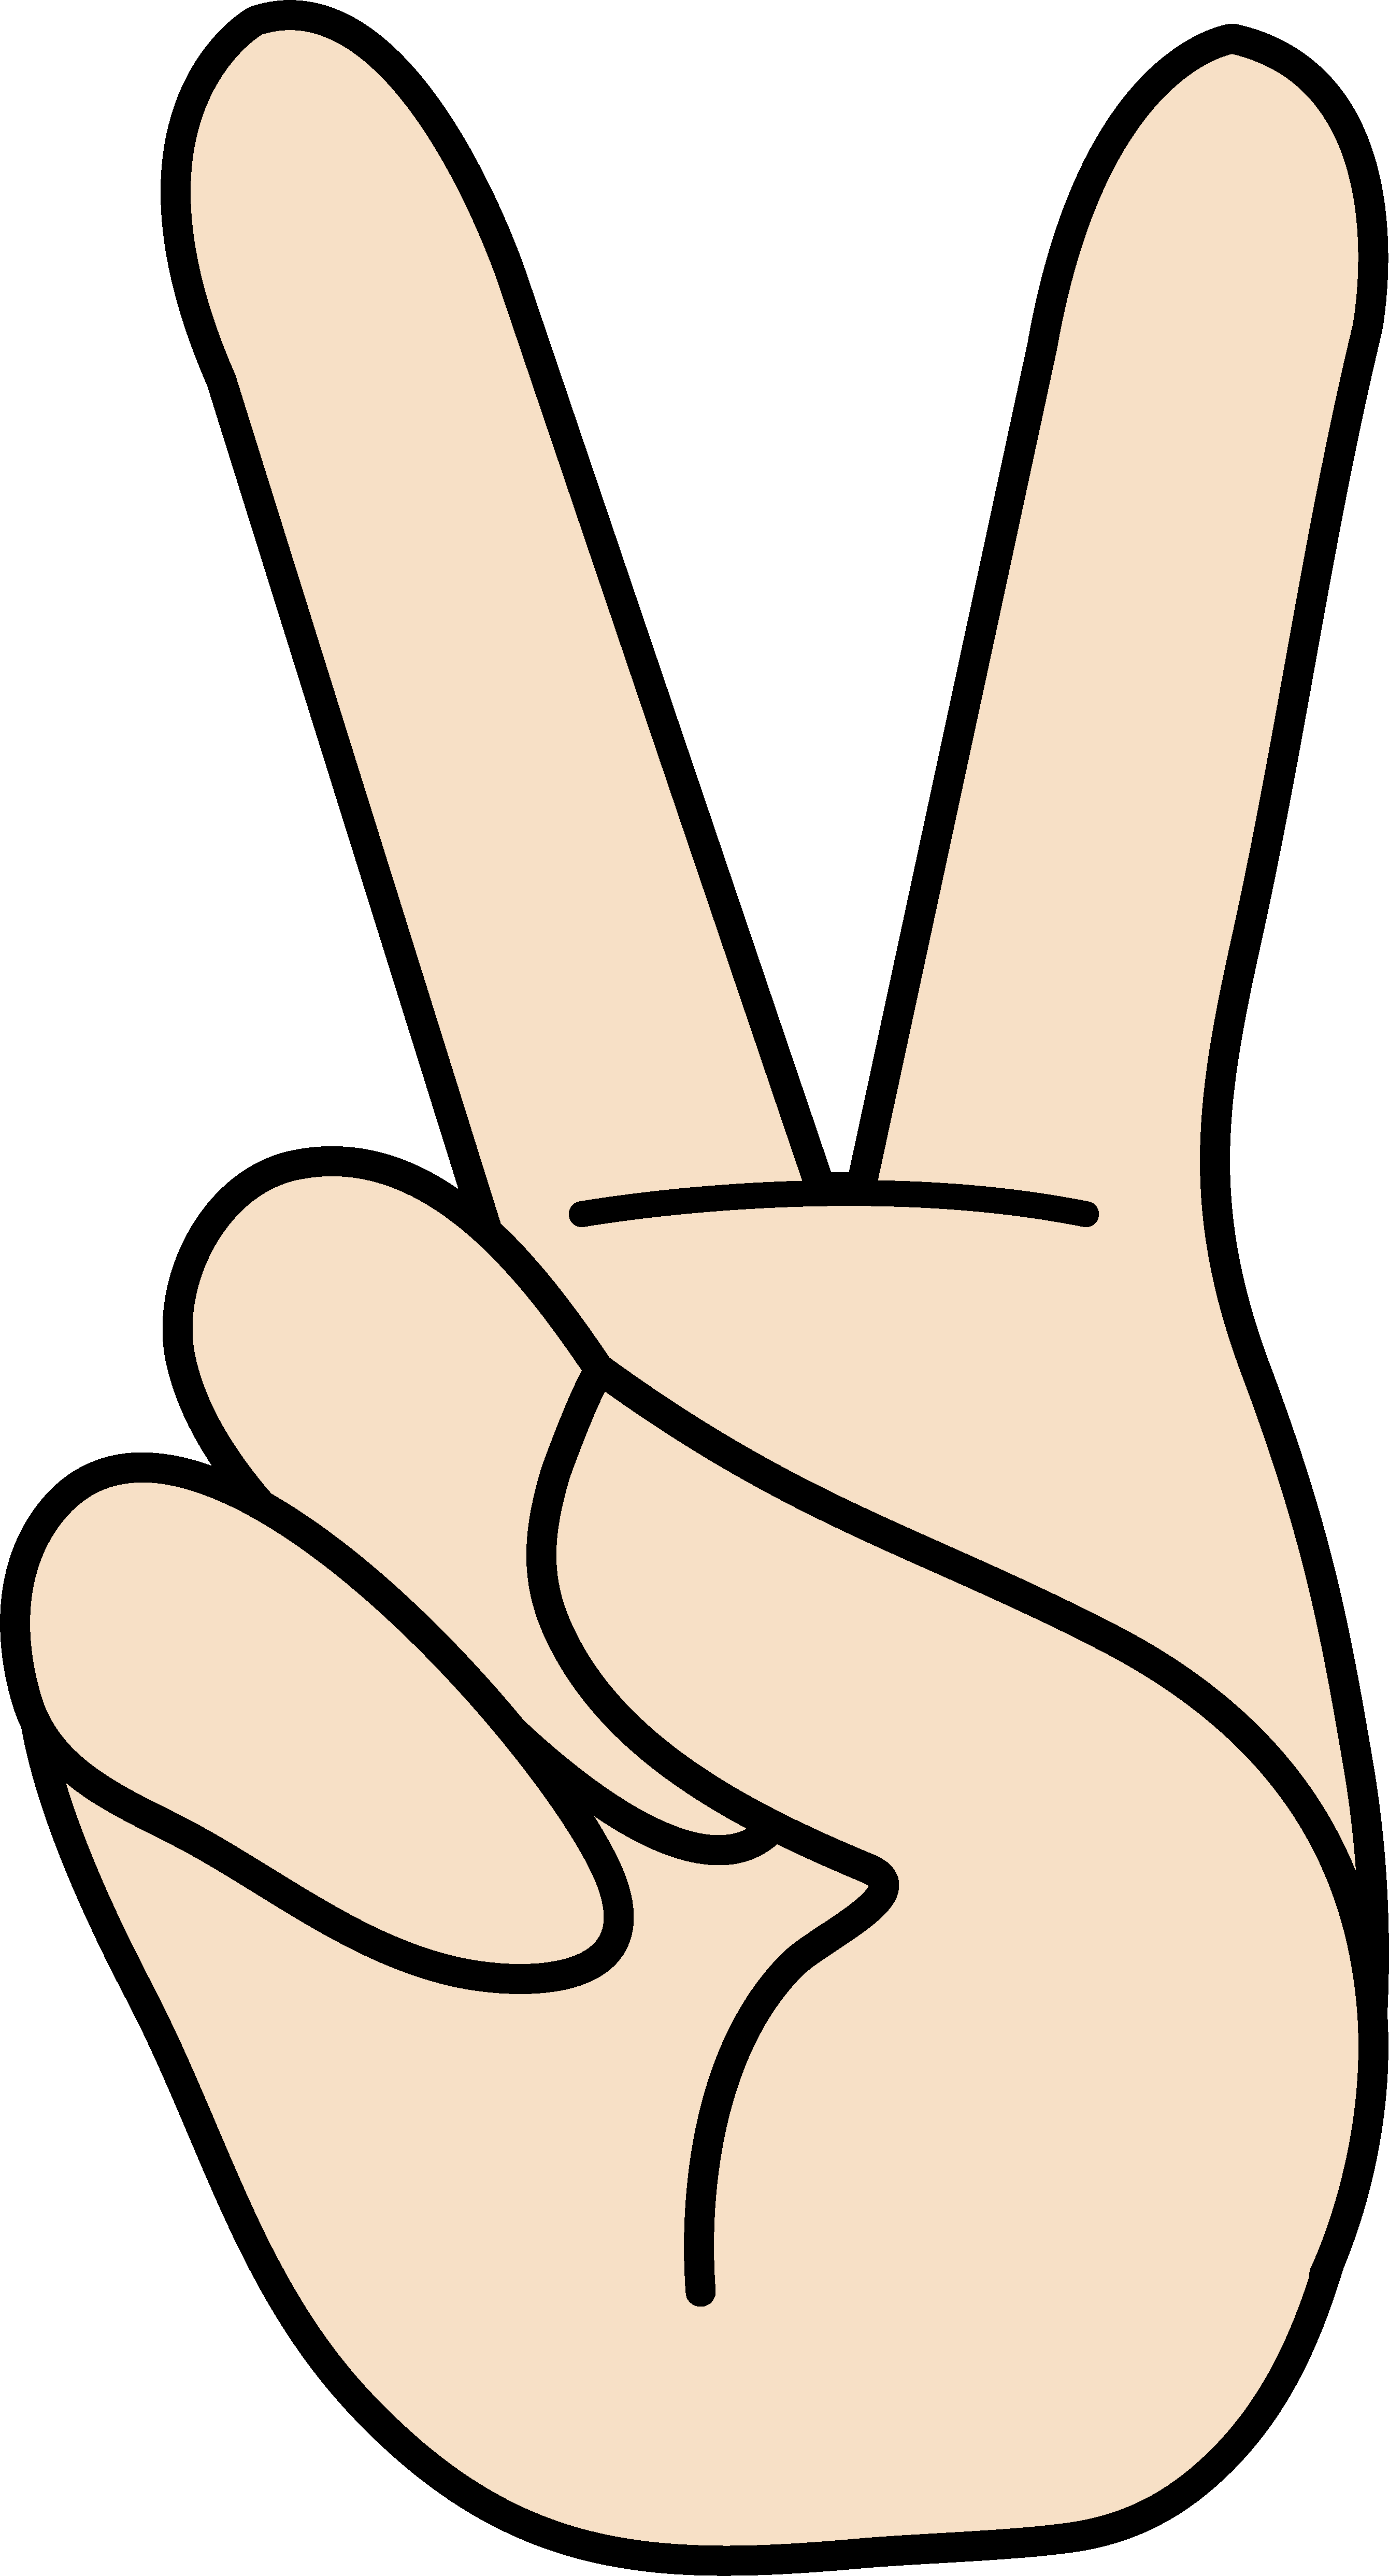 Free 2 Fingers Cliparts, Download Free Clip Art, Free Clip.